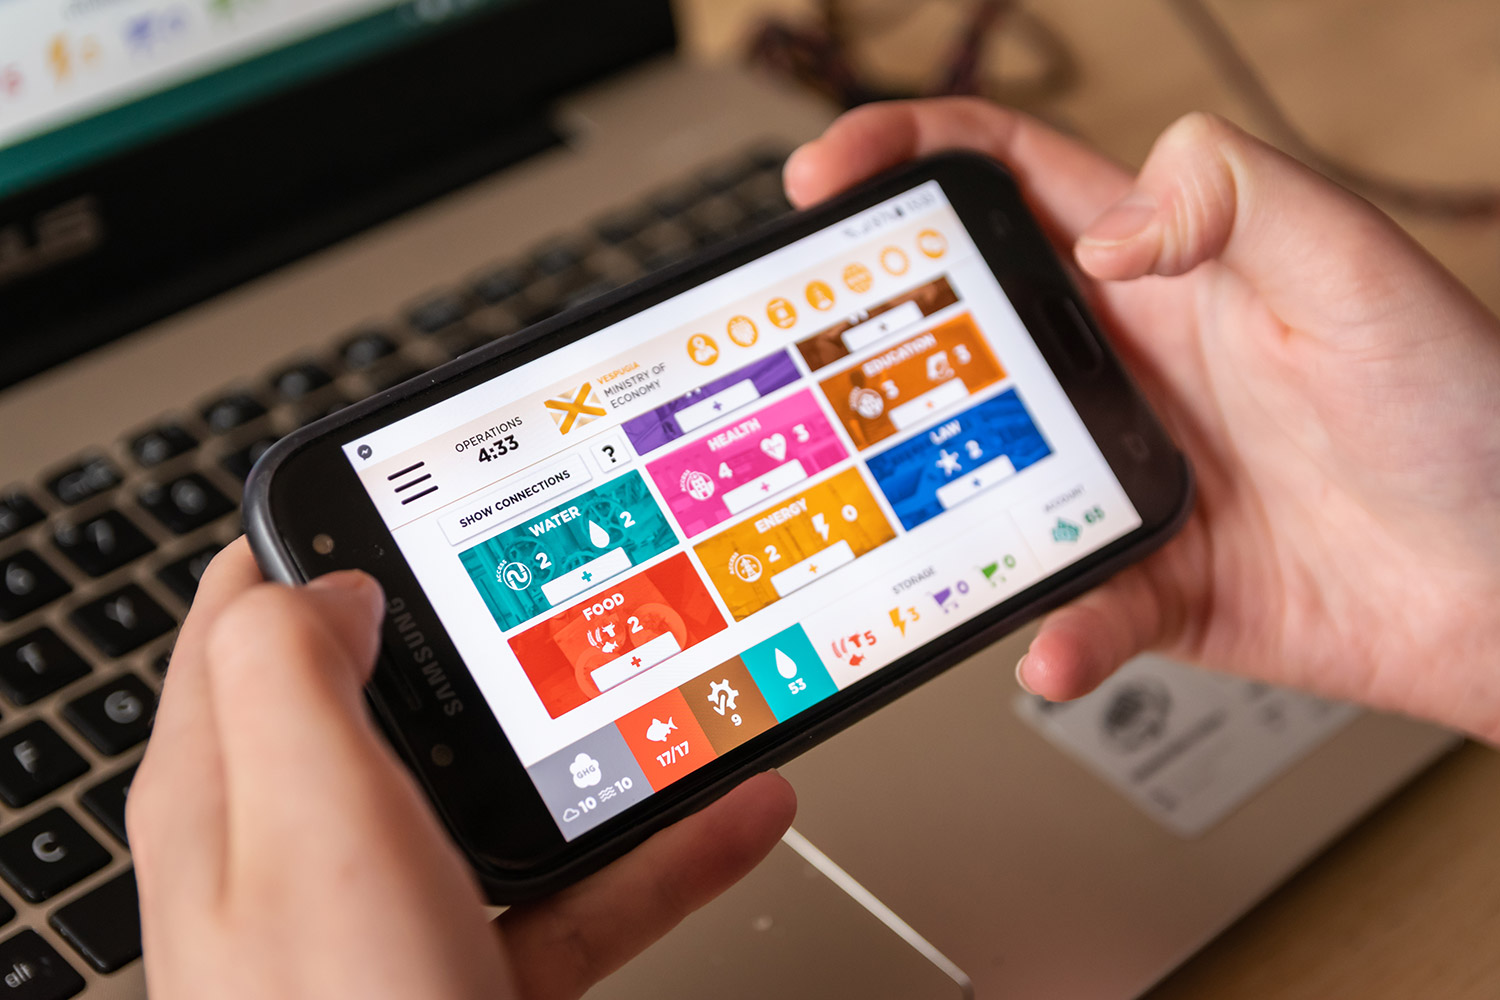 Register for SDGs in action! The World's Future Online simulation